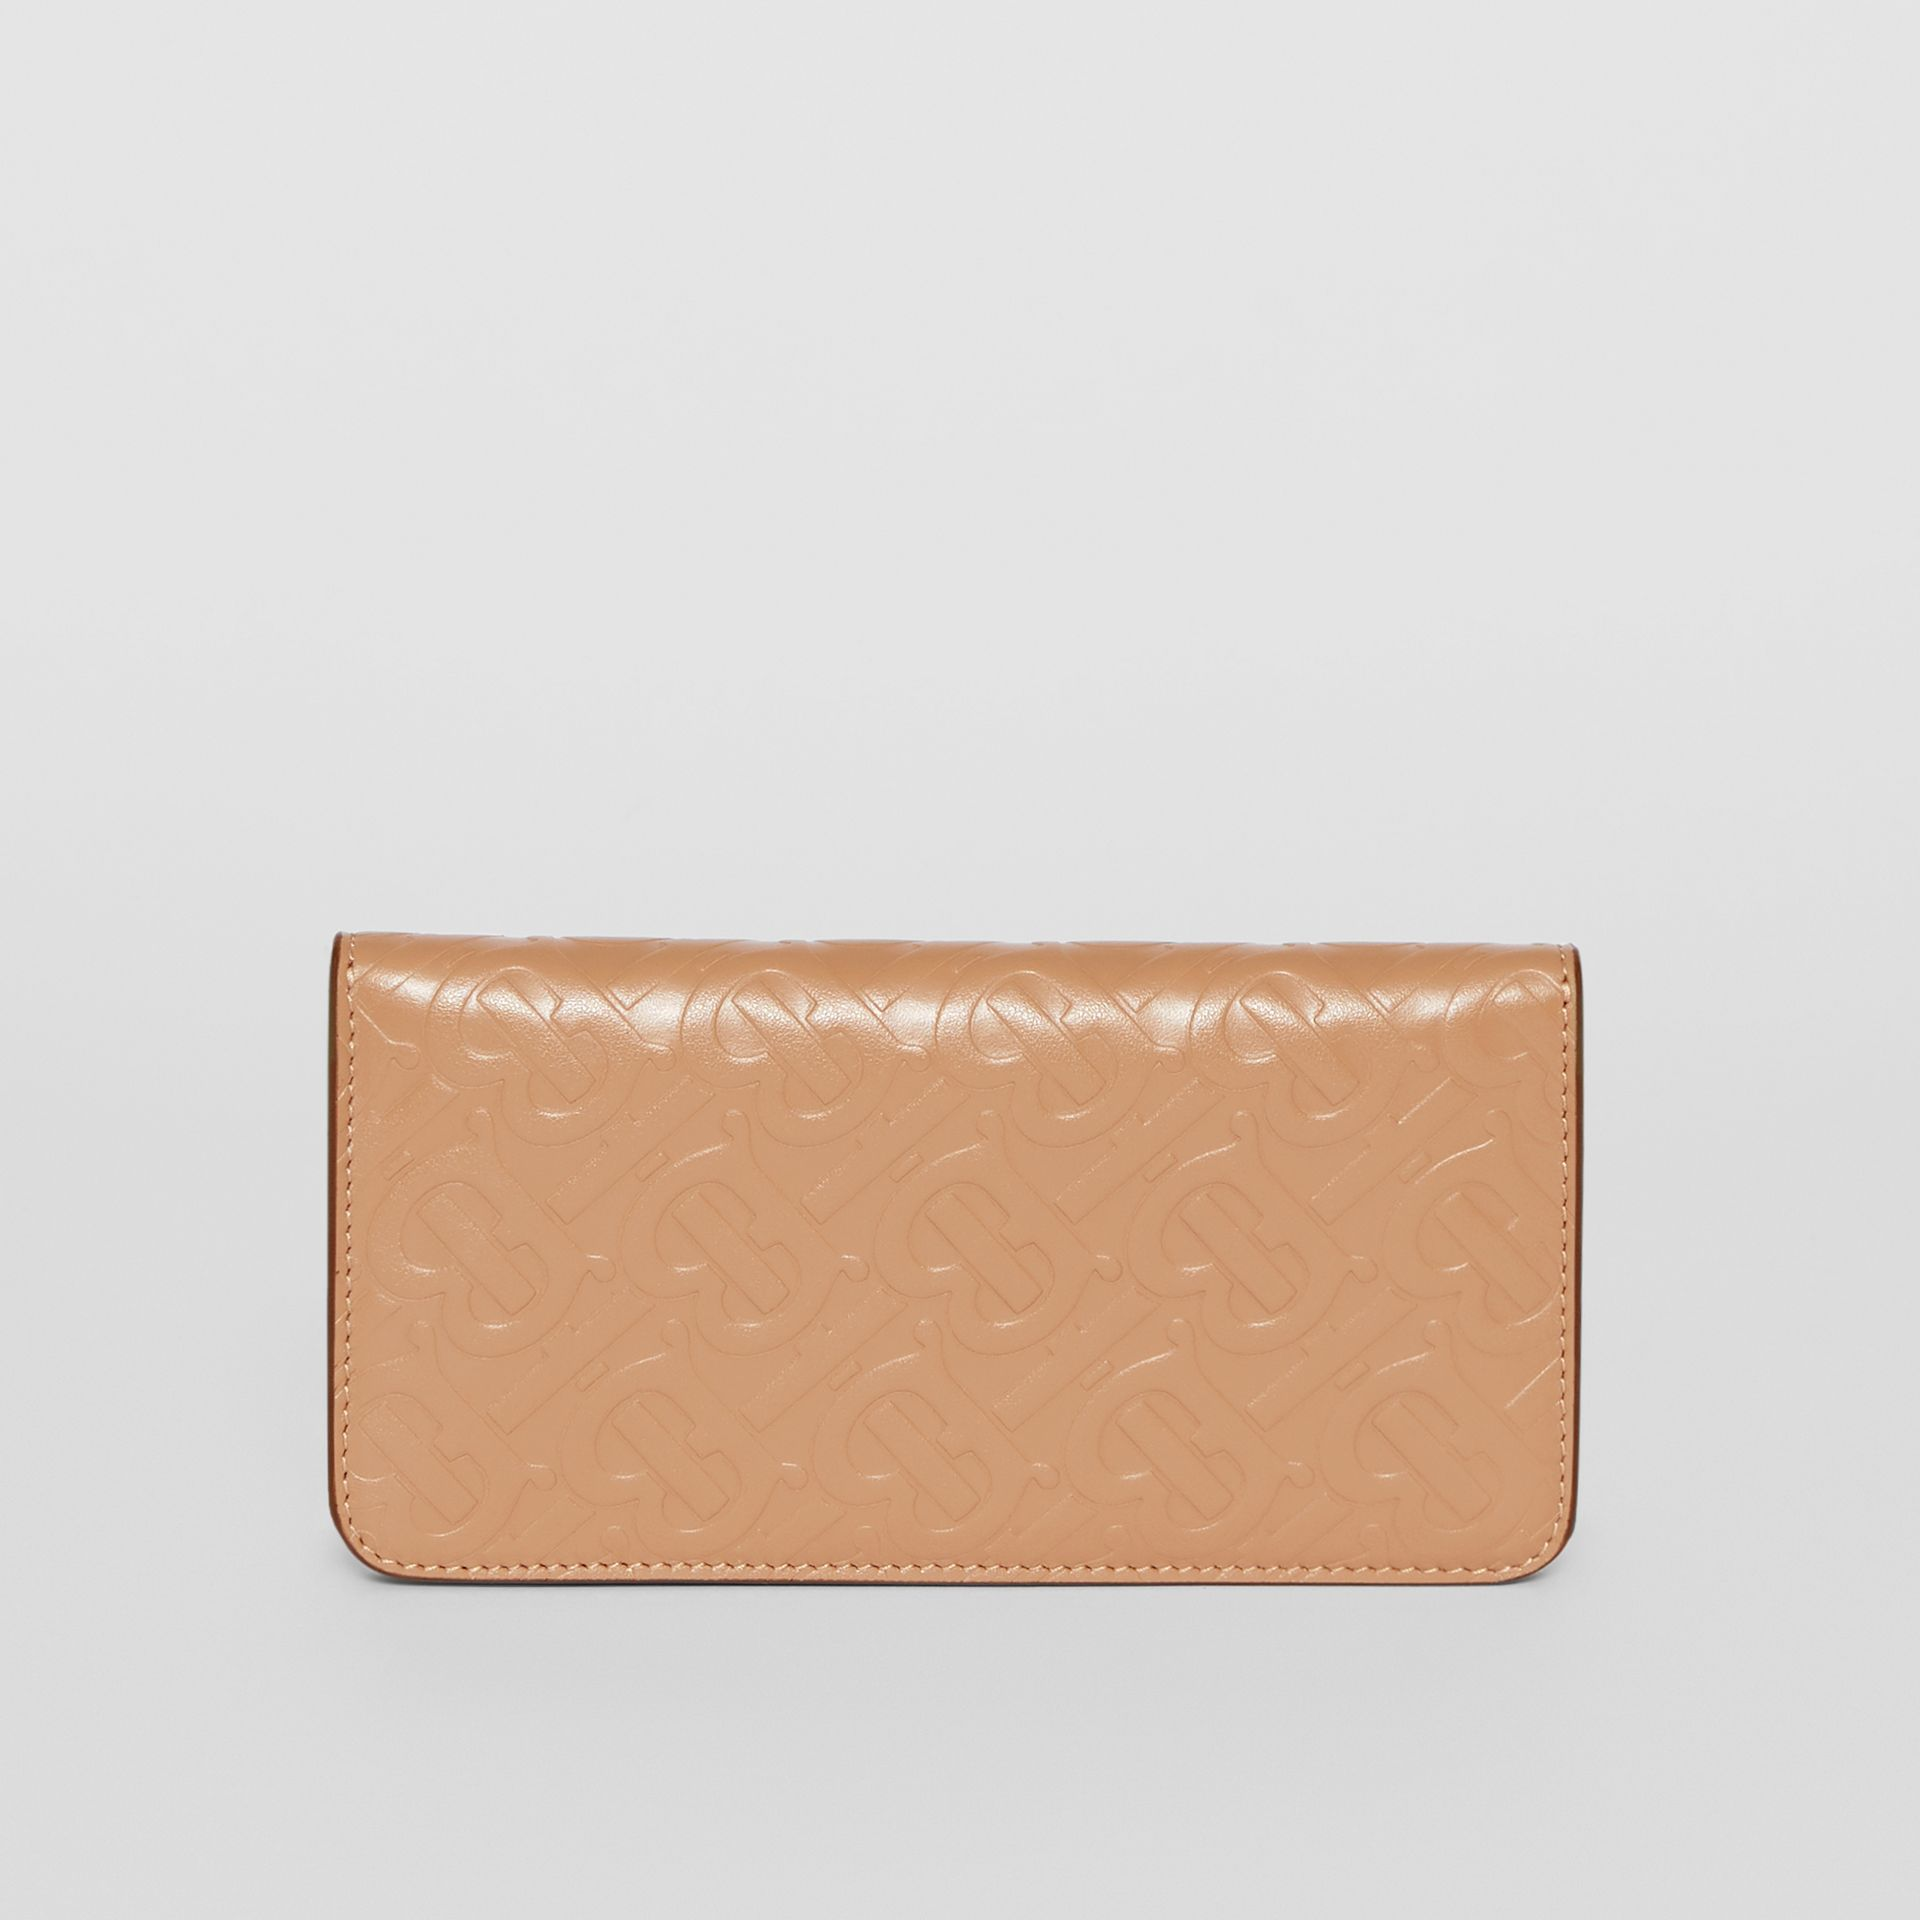 Monogram Leather Phone Wallet in Light Camel - Women | Burberry - gallery image 5